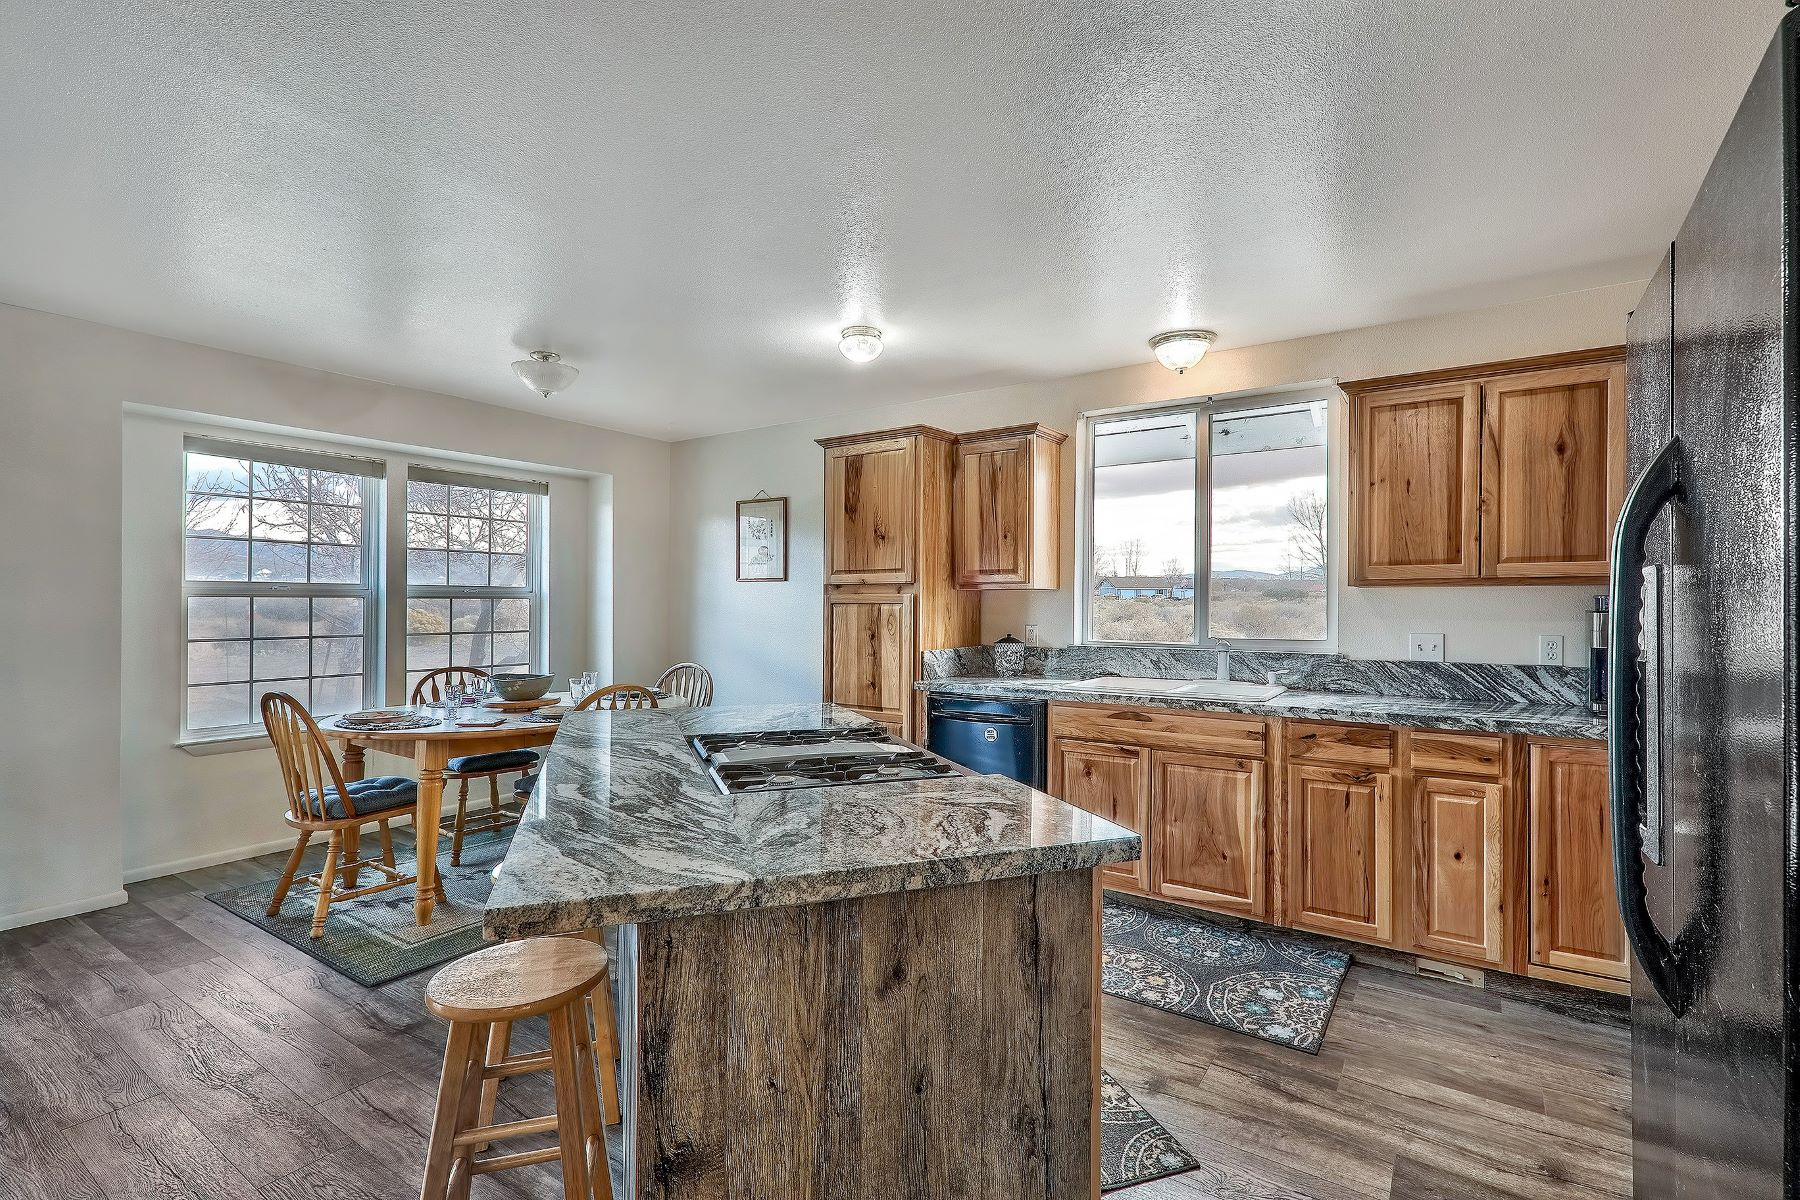 Additional photo for property listing at 1400 Kim Place, Reno NV 1400 Kim Place Minden, Nevada 89423 United States